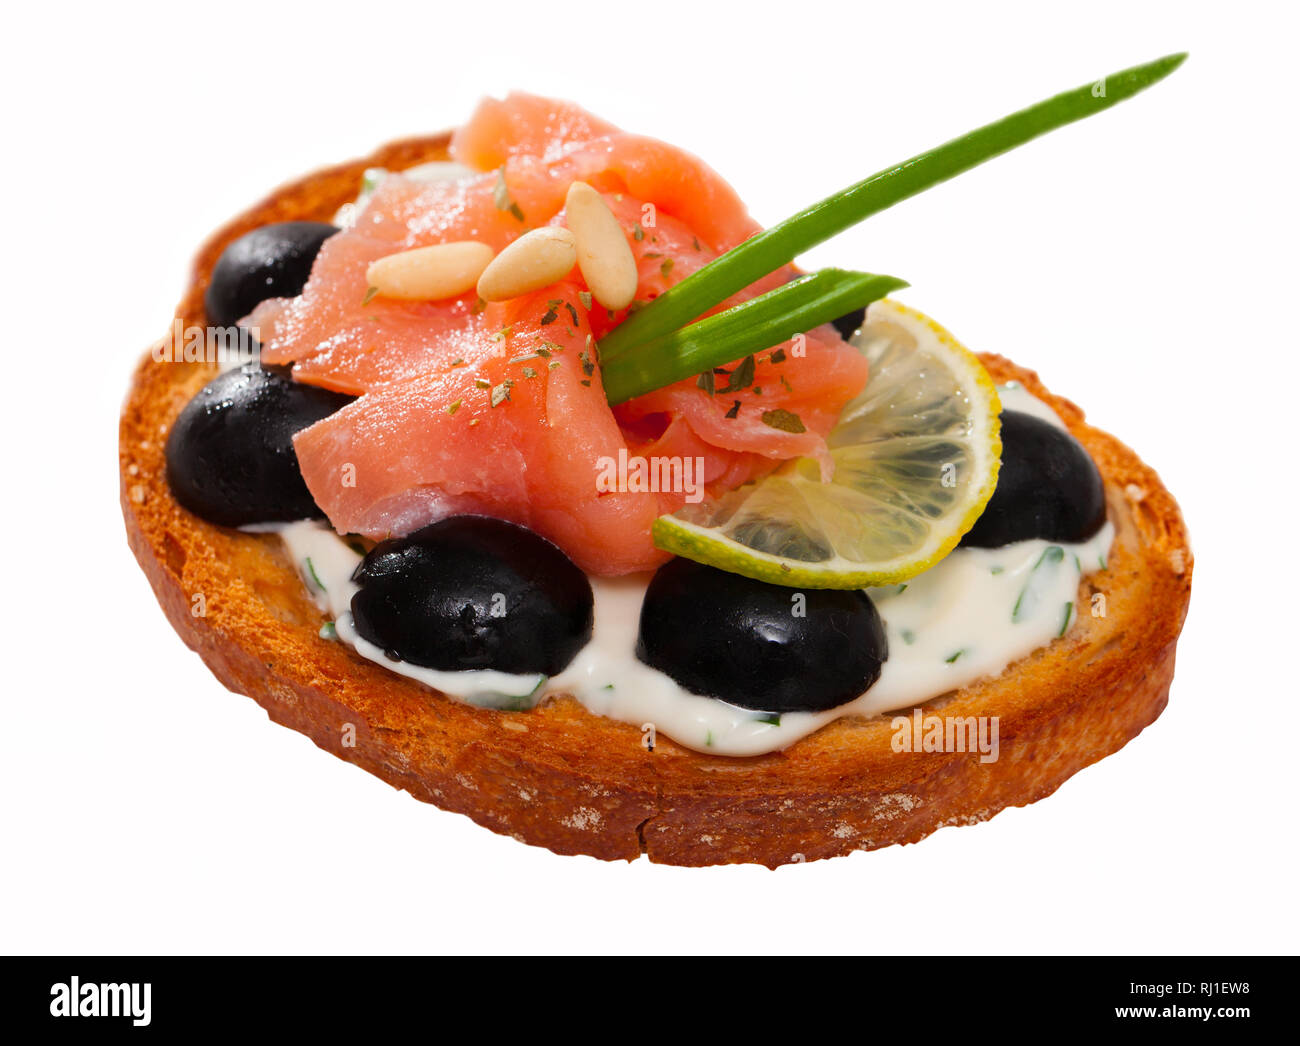 Sandwiche with salmon and olives on white sauce. Isolated over white background - Stock Image